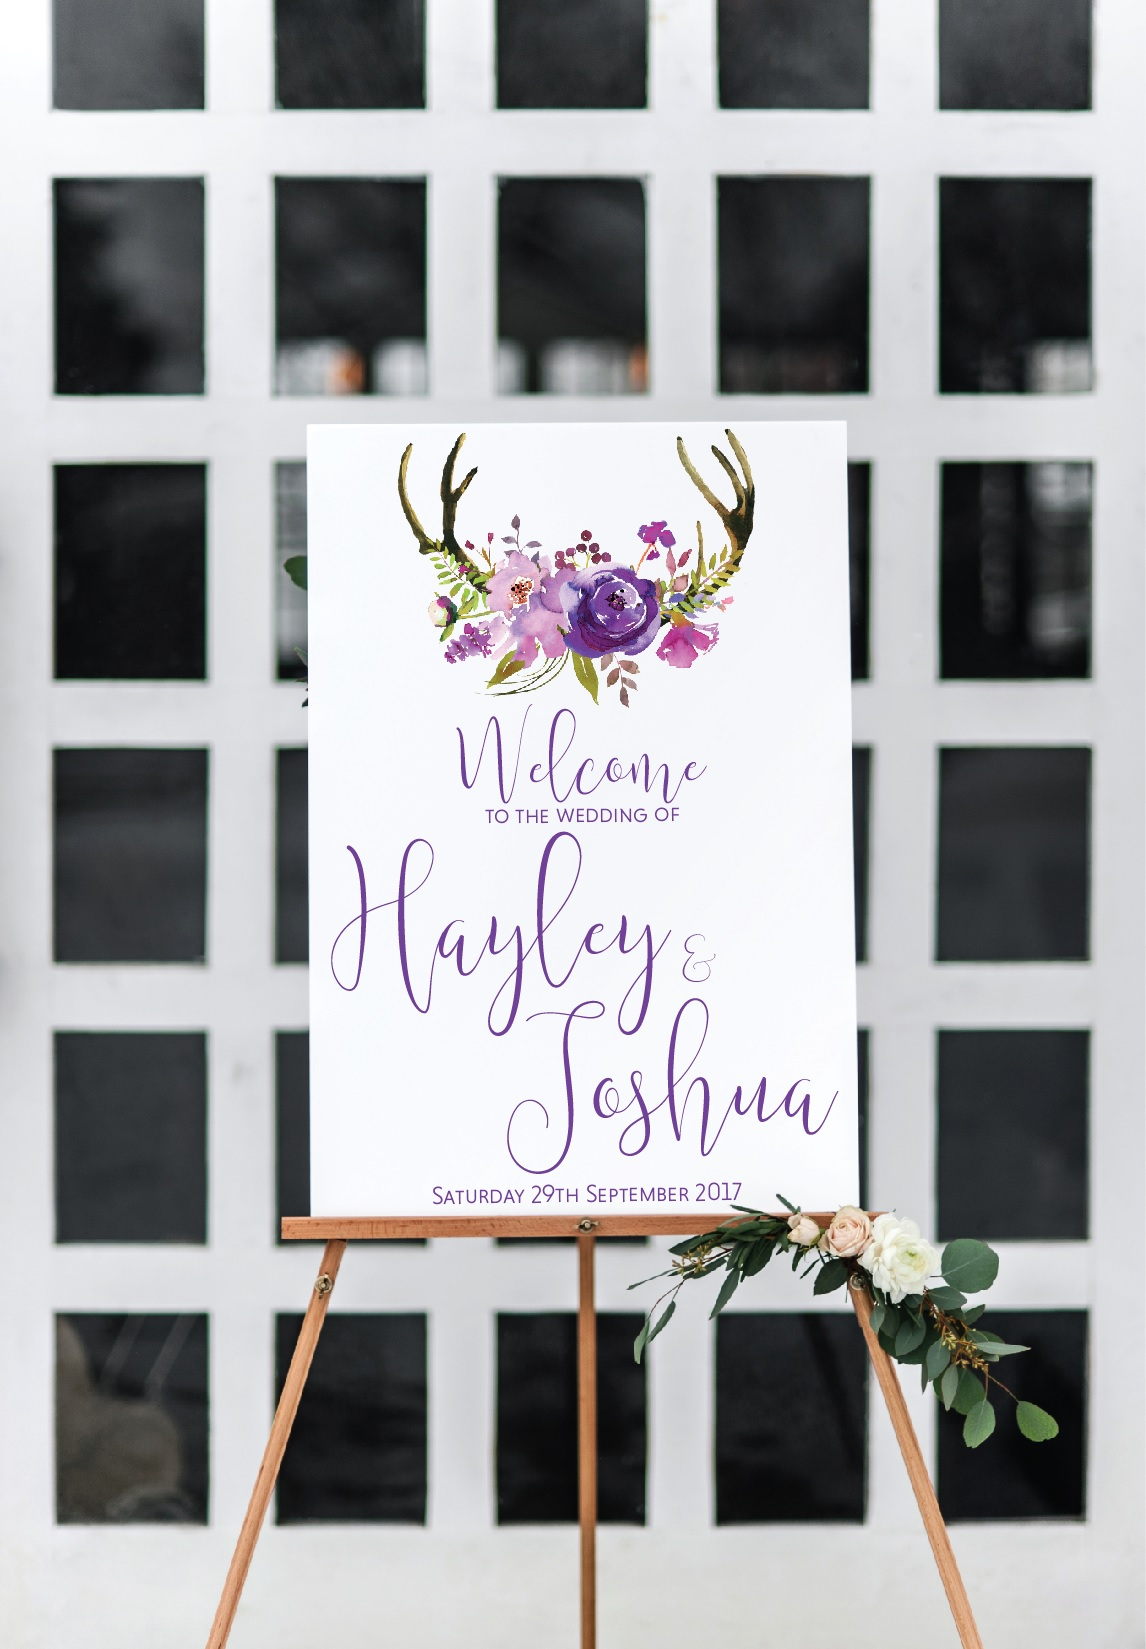 stag antlers wedding welcome sign